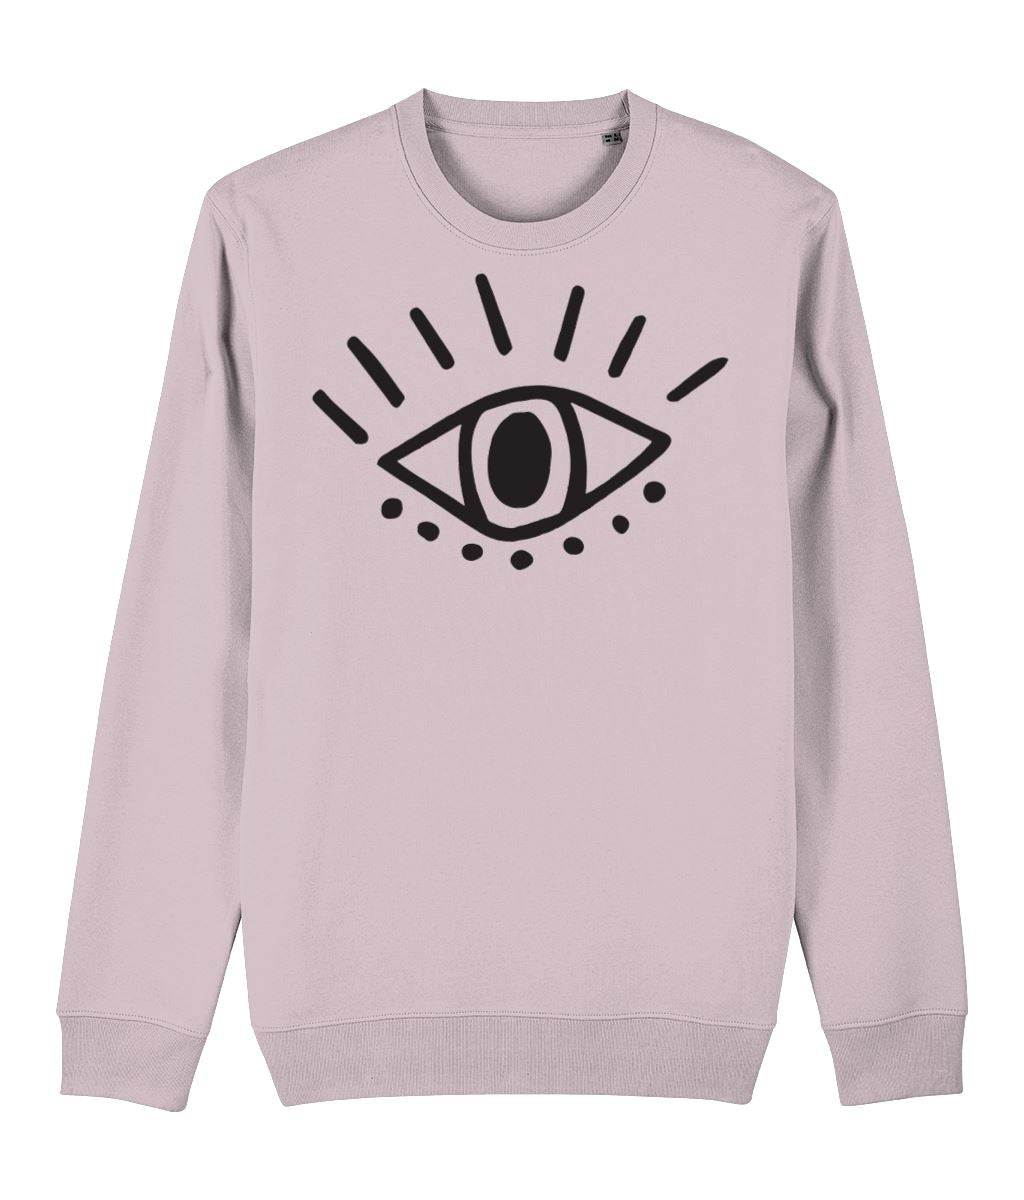 Esoteric Eye Sweatshirt Clothing IndianBelieves Cotton Pink X-Small